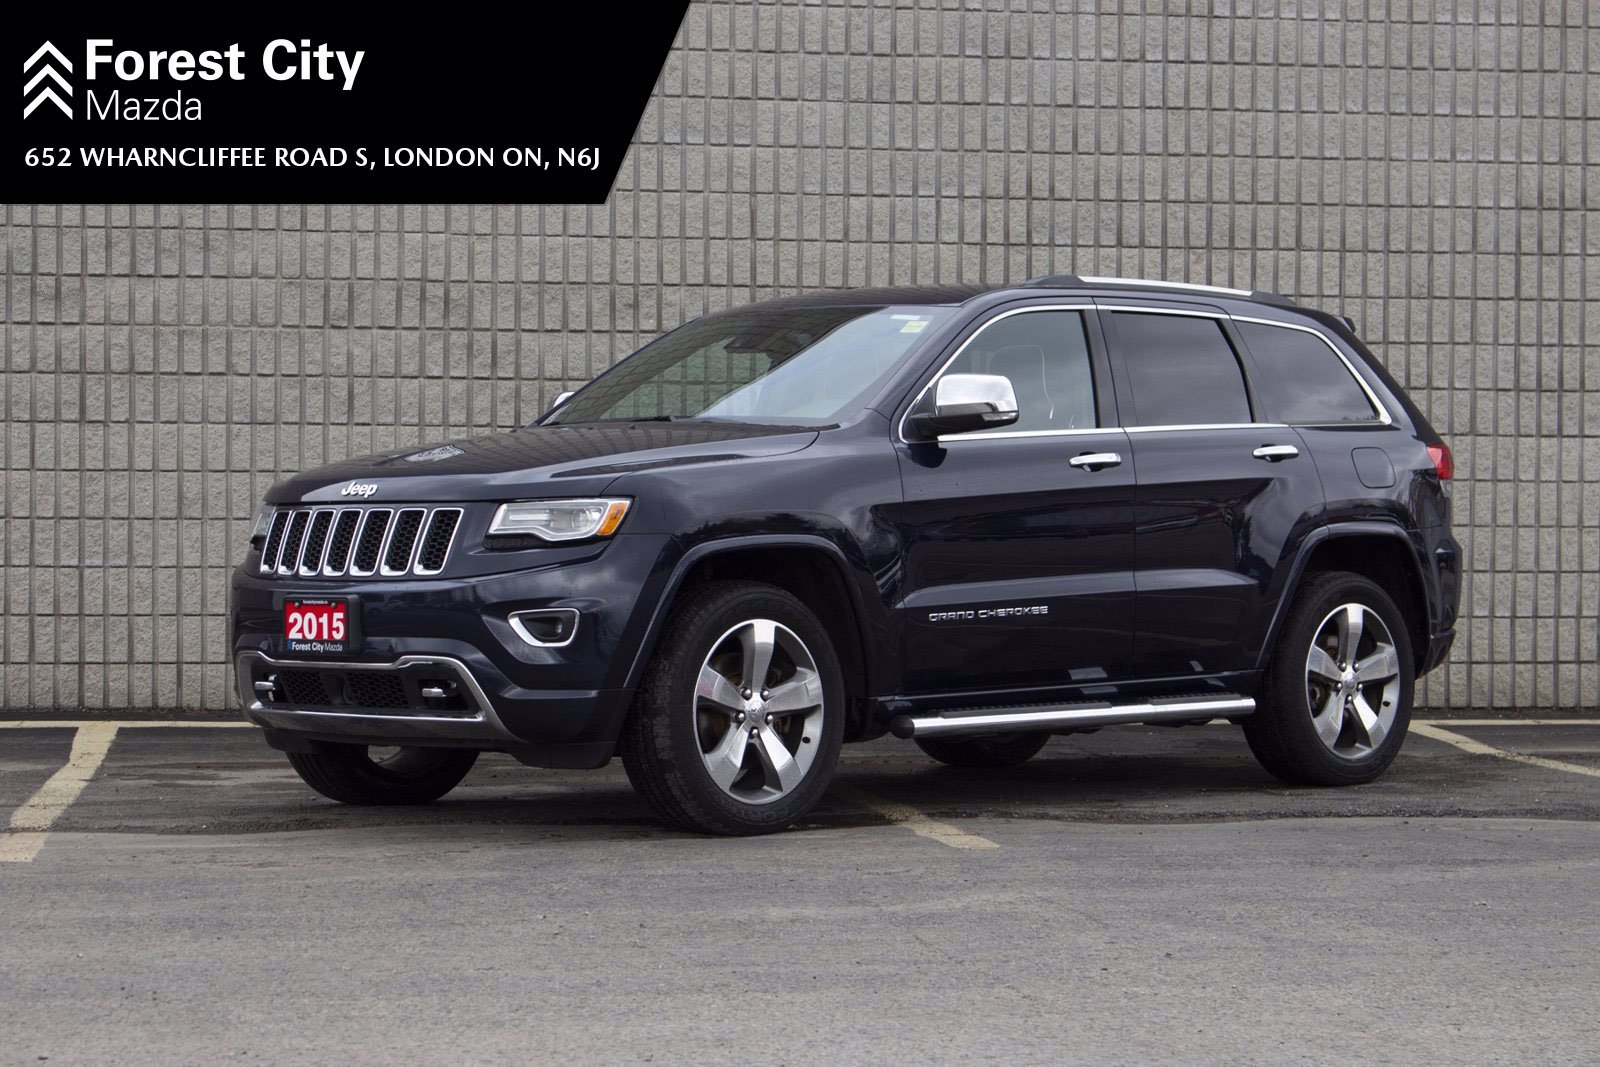 Pre-Owned 2015 Jeep Grand Cherokee Overland, DIESEL, LEATHER, MOON ROOF, NAVIGATION